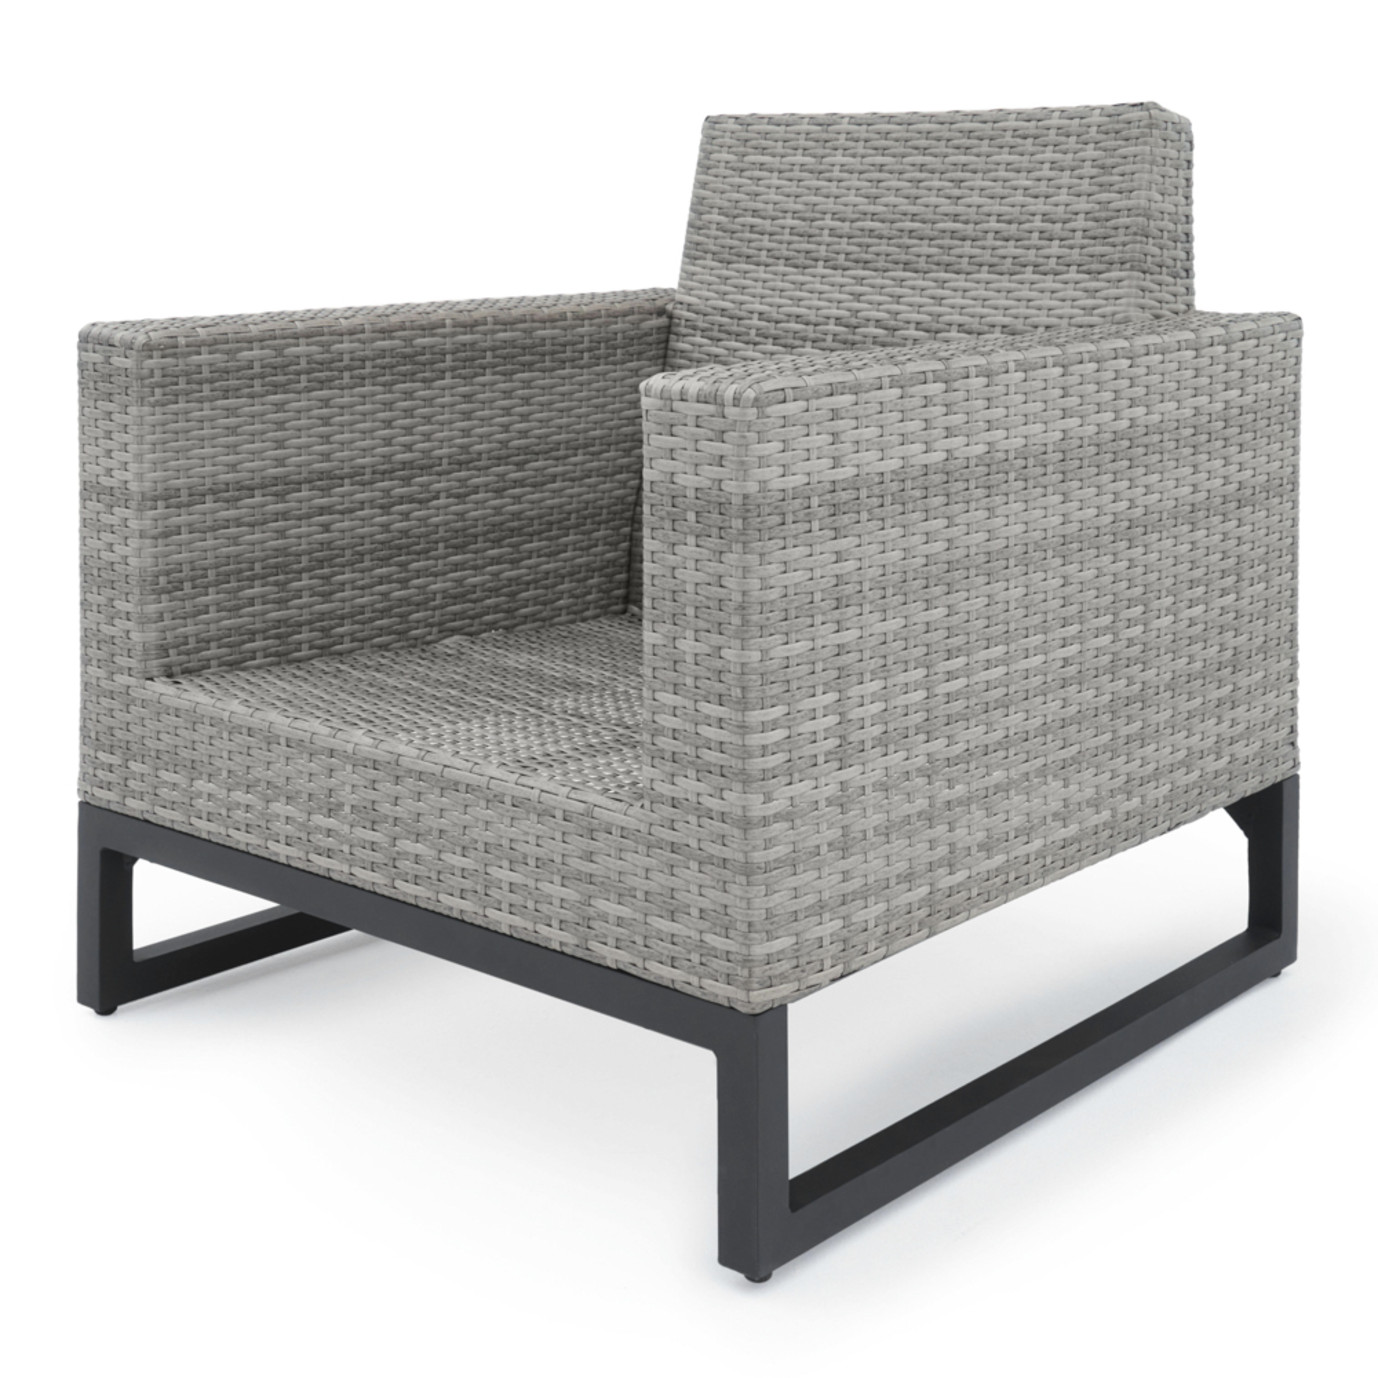 Milo™ Gray 7pc Deep Seating Set - Charcoal Gray